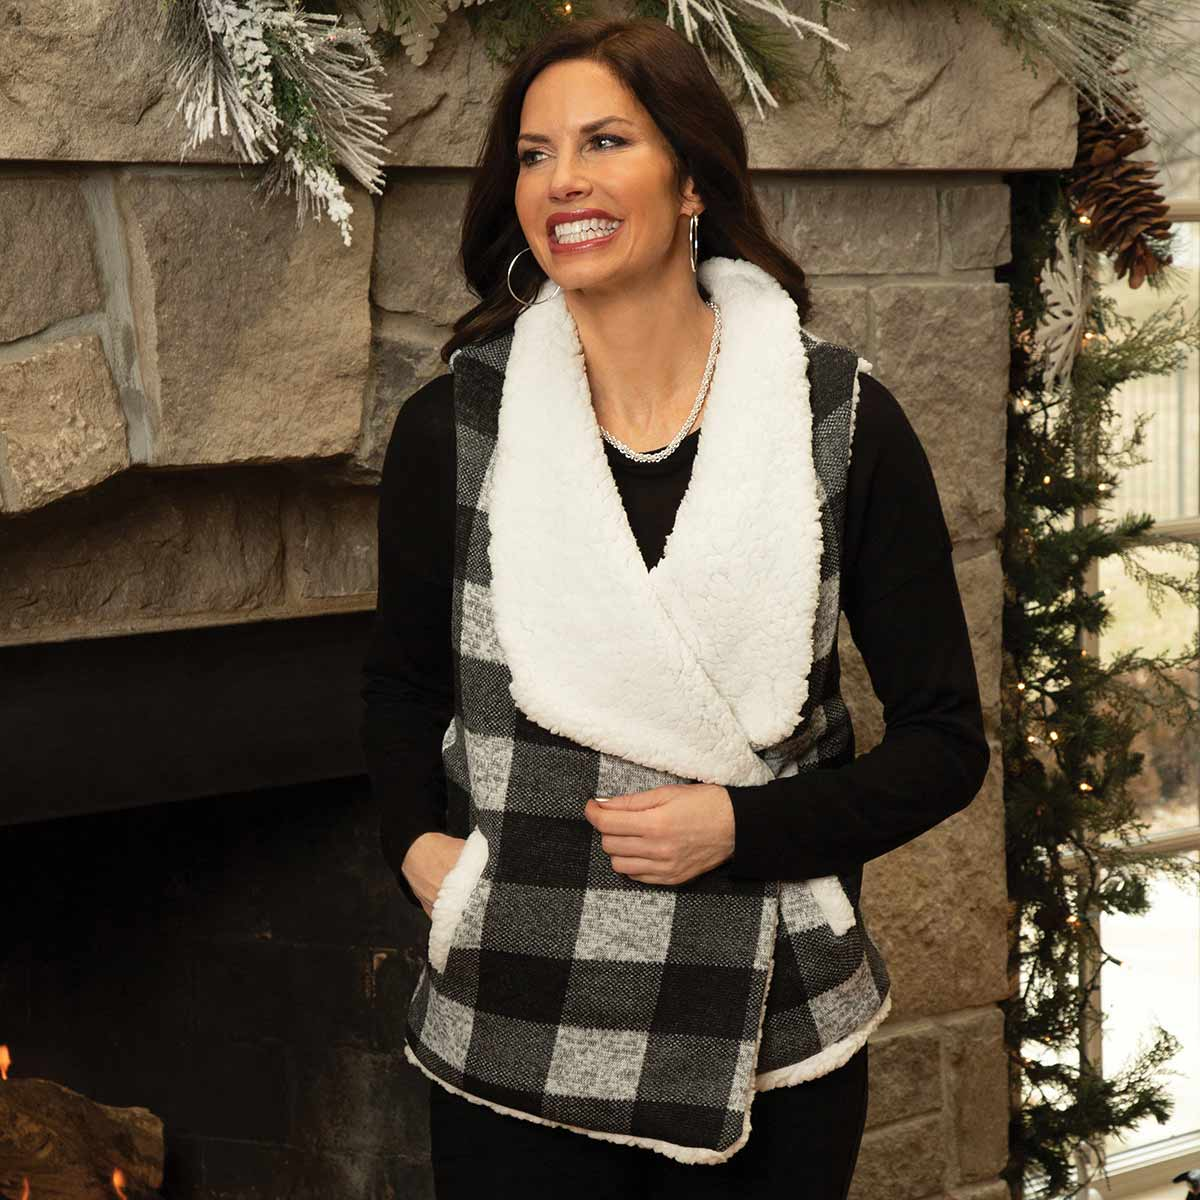 Black and Grey Buffalo Plaid Fleece Vest with Pockets